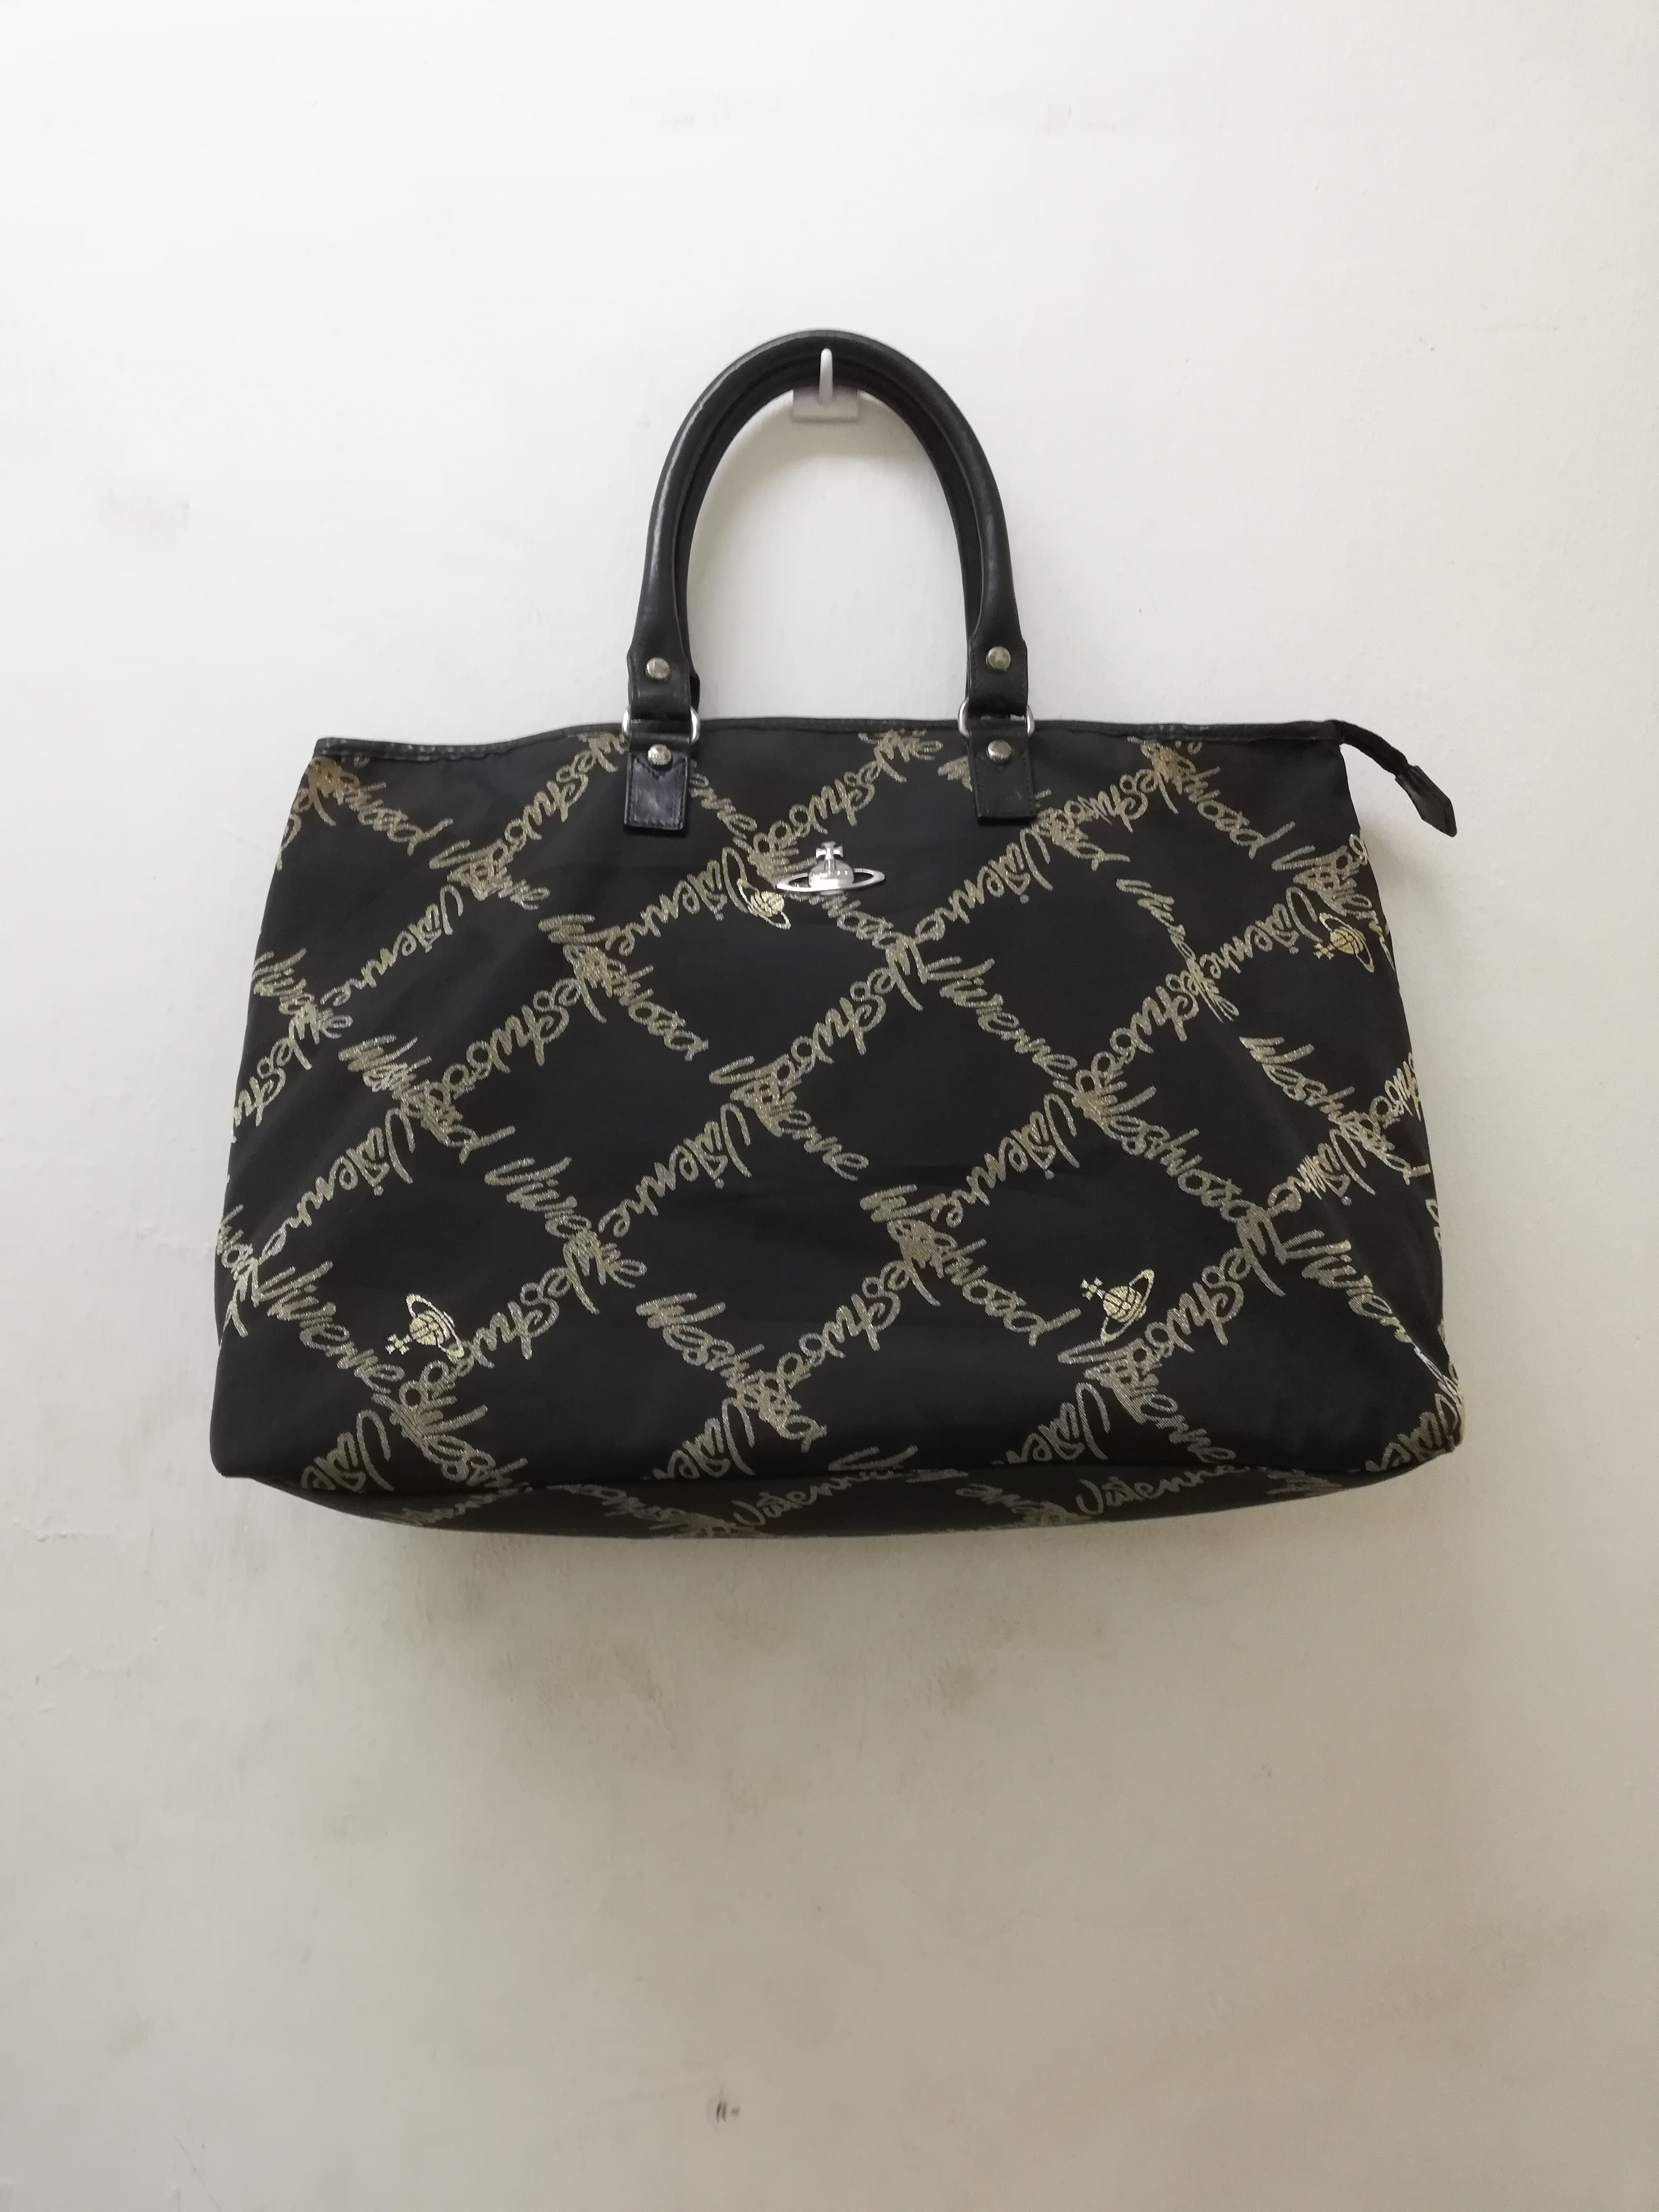 Rare Vivienne Westwood Full Monogram Spell Out Travel Hand Carry Bag